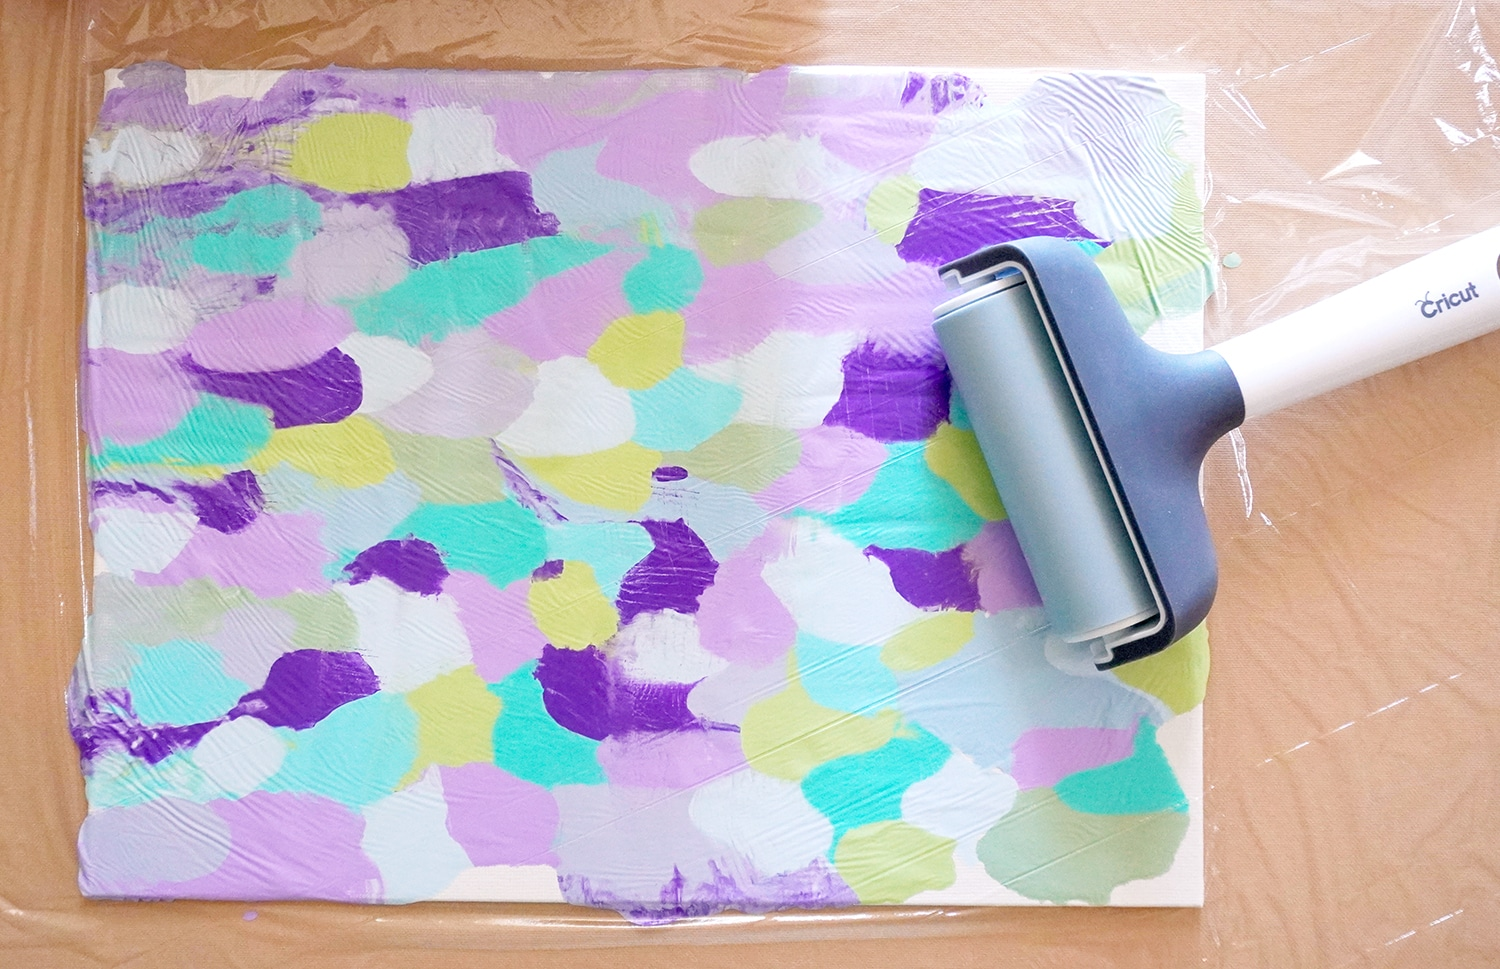 Blobs of paint on a canvas covered in plastic wrap with a brayer on top